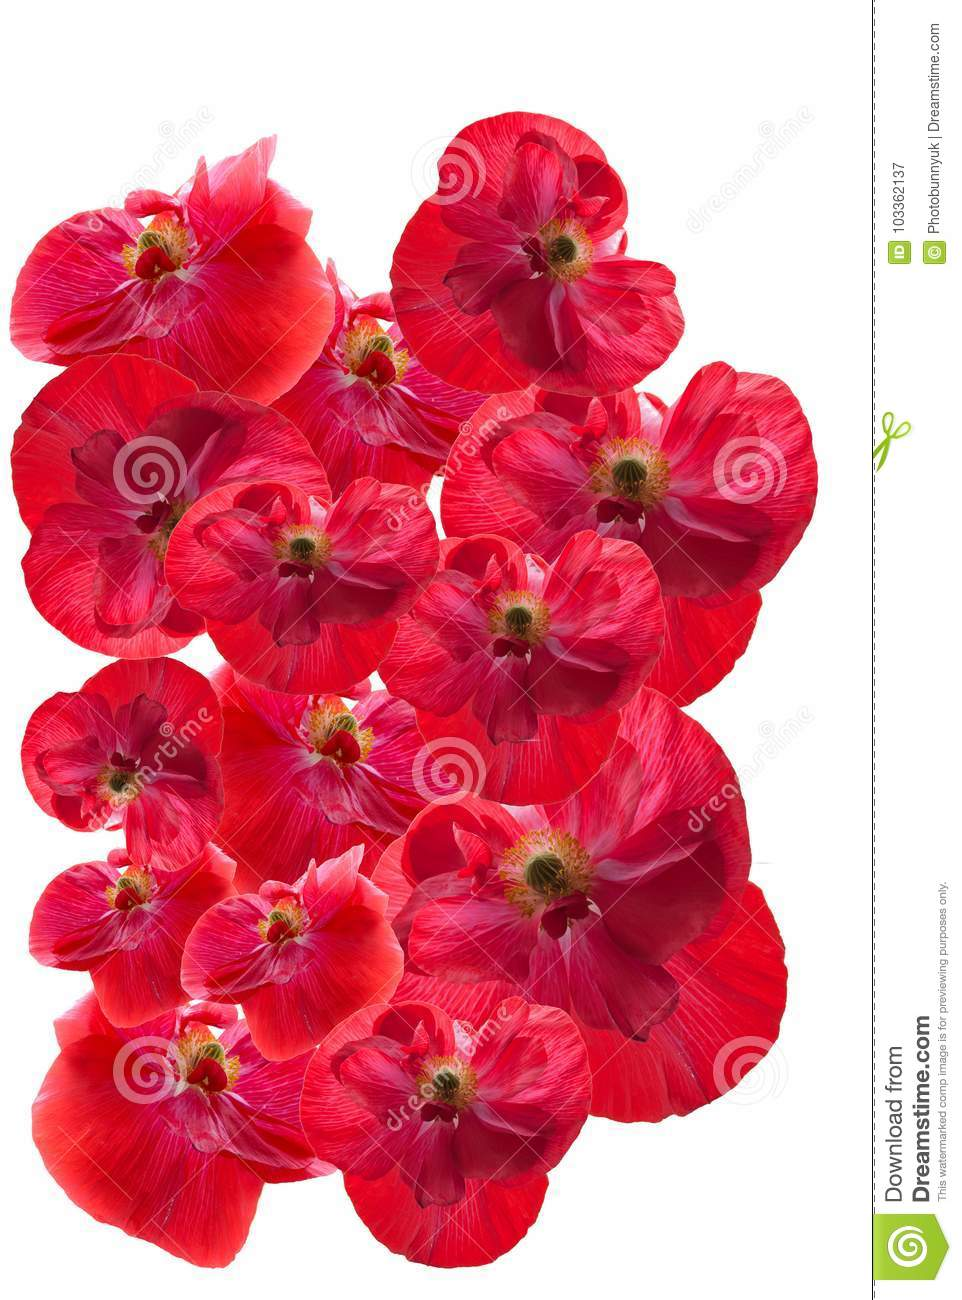 Red Poppies On A White Background Stock Image Image Of Symbolic